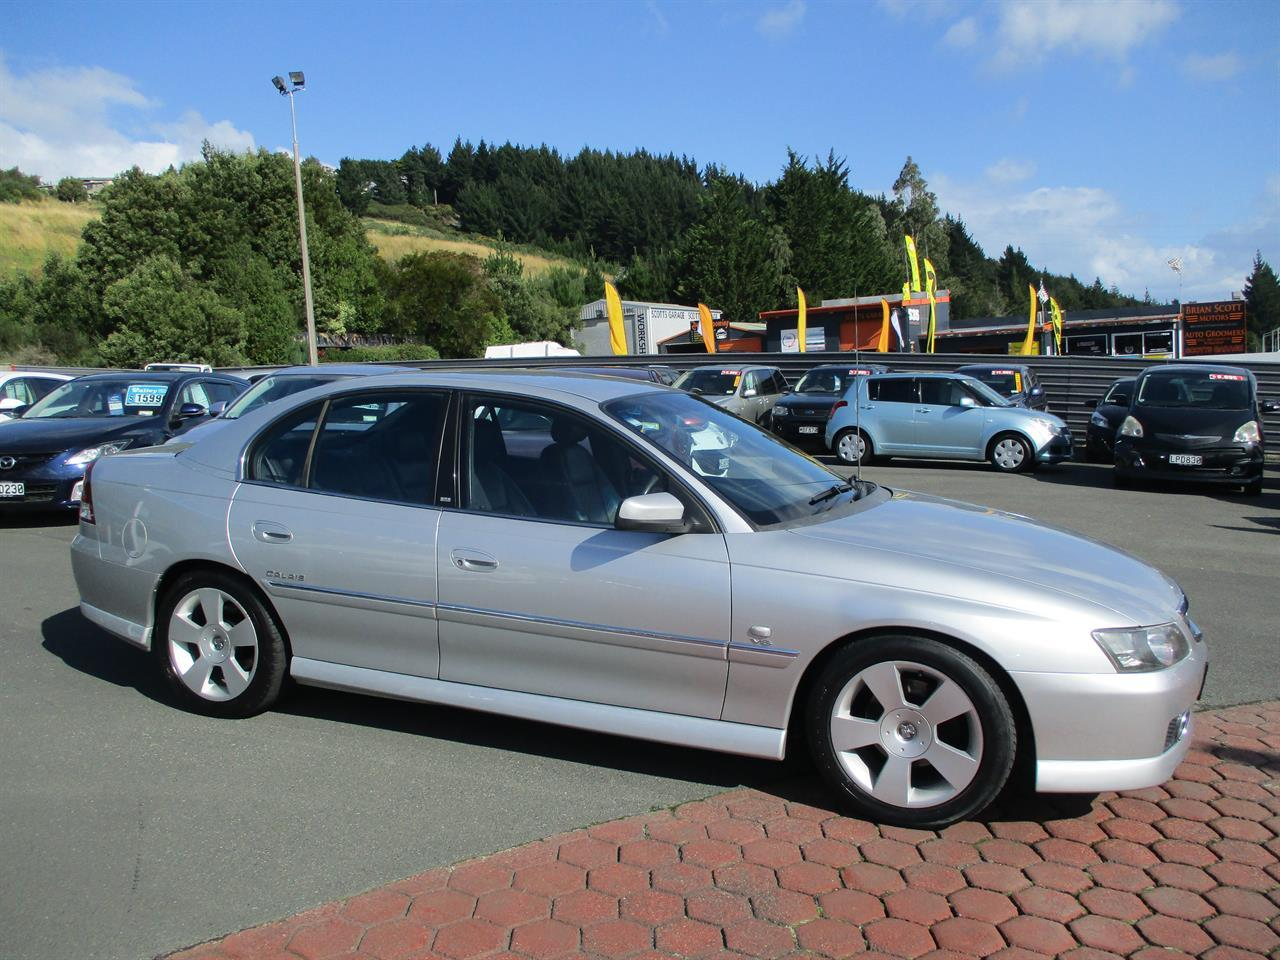 image-1, 2004 HOLDEN COMMODORE CALAIS V8 at Dunedin